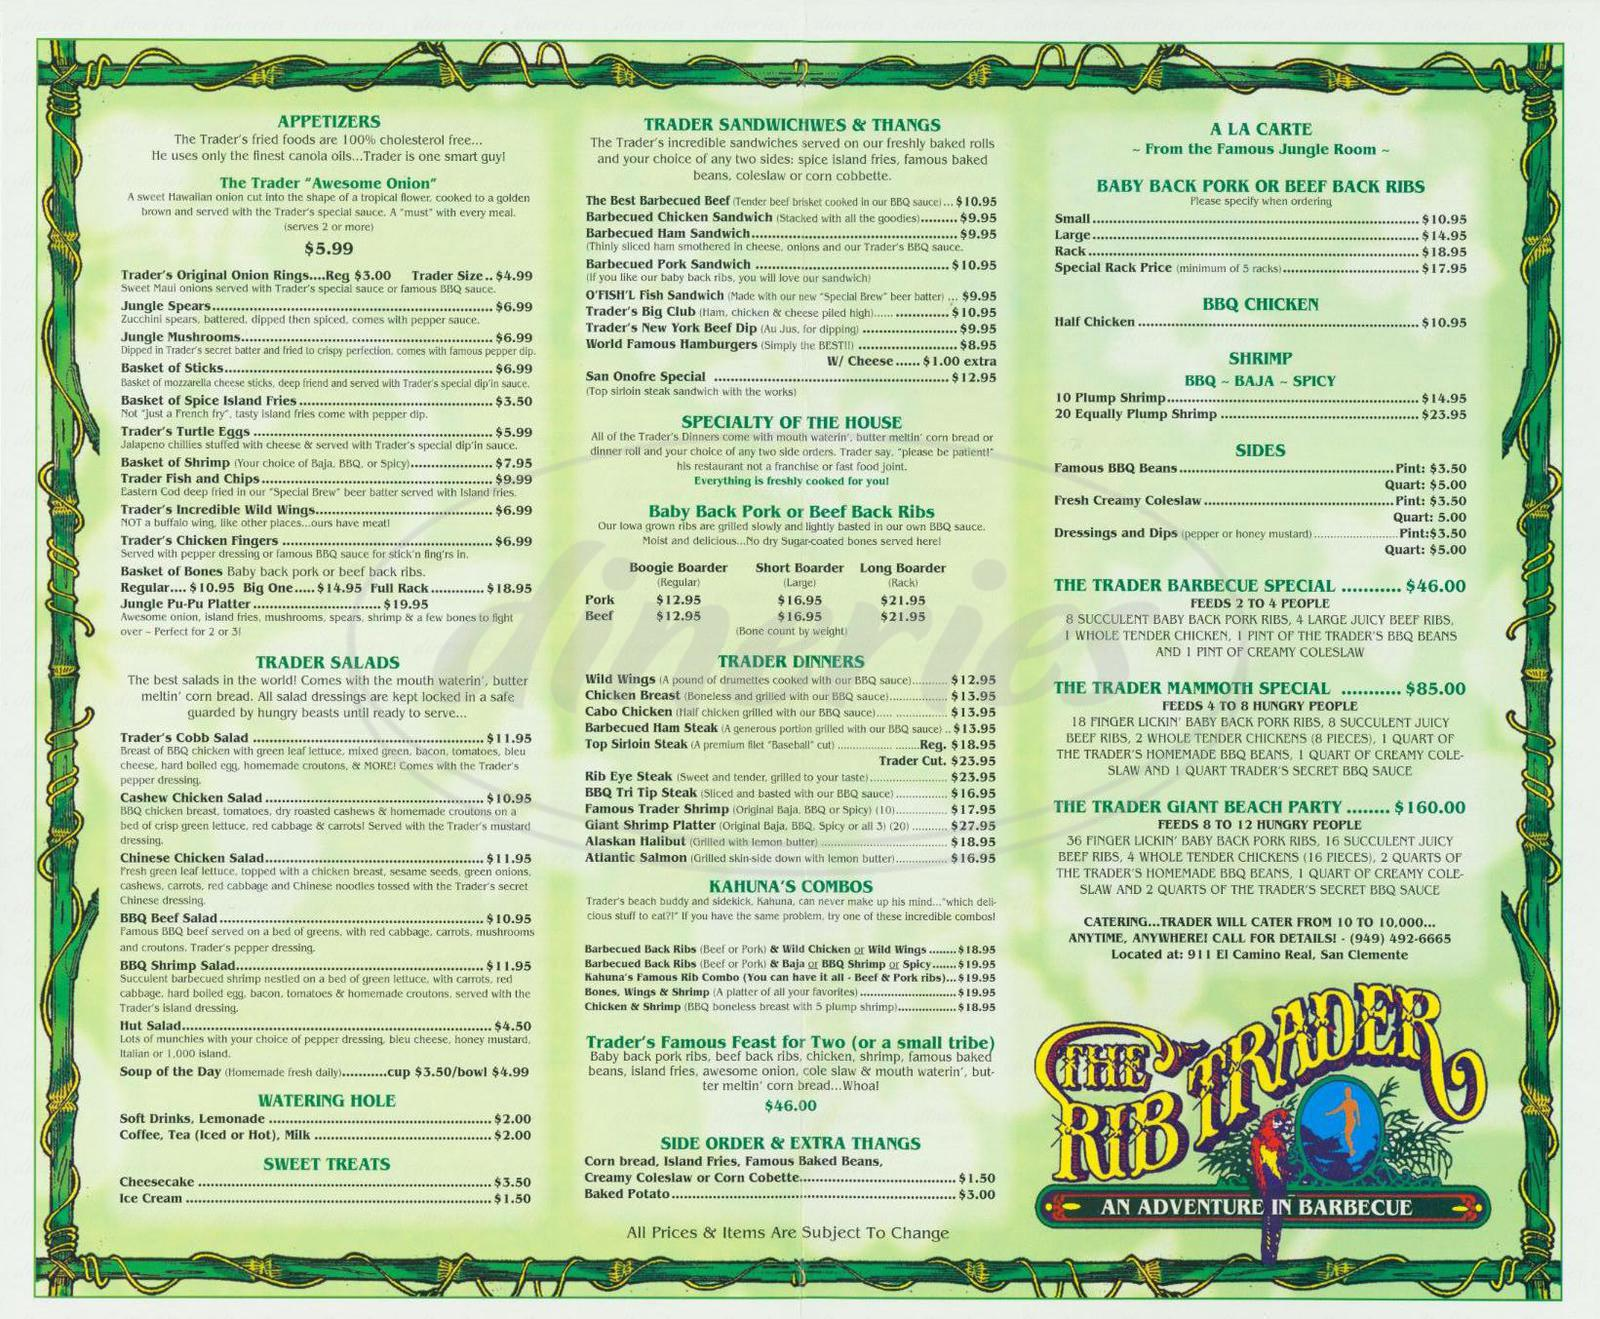 menu for The Rib Trader